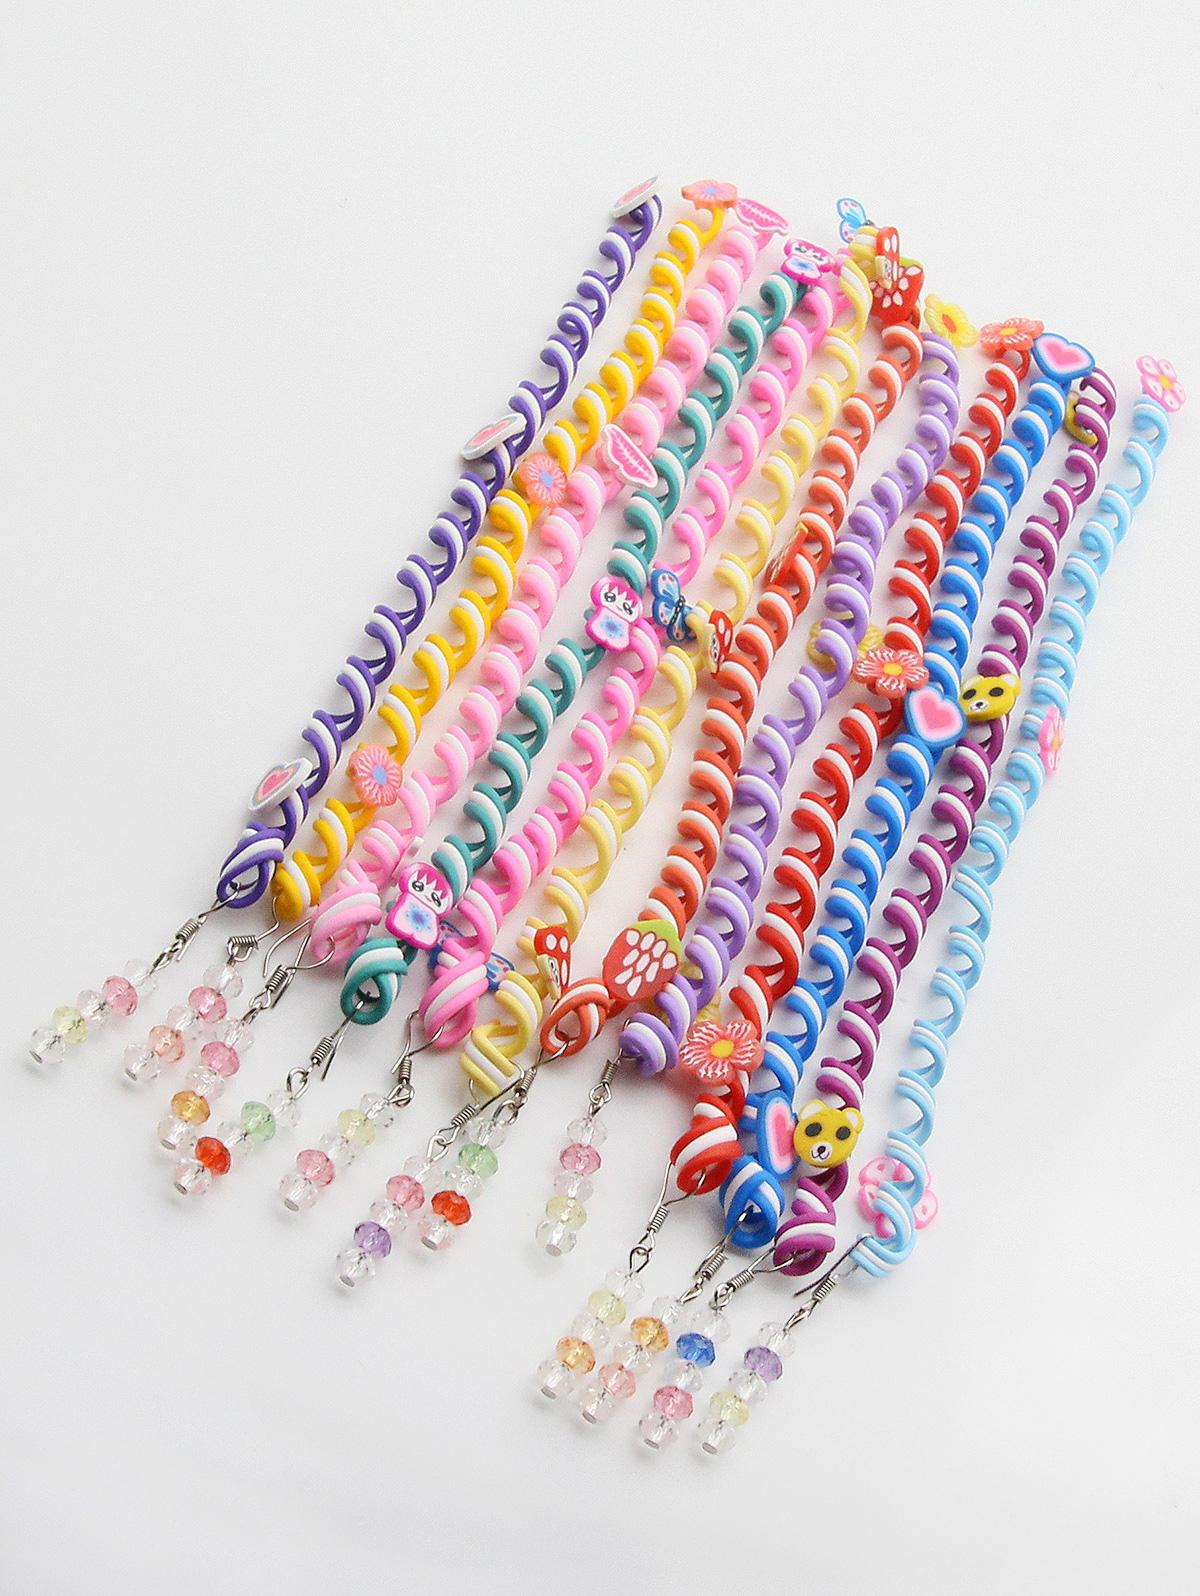 12 Pcs Cute Rainbow Color Spiral Curls Twist Hair Braider Set